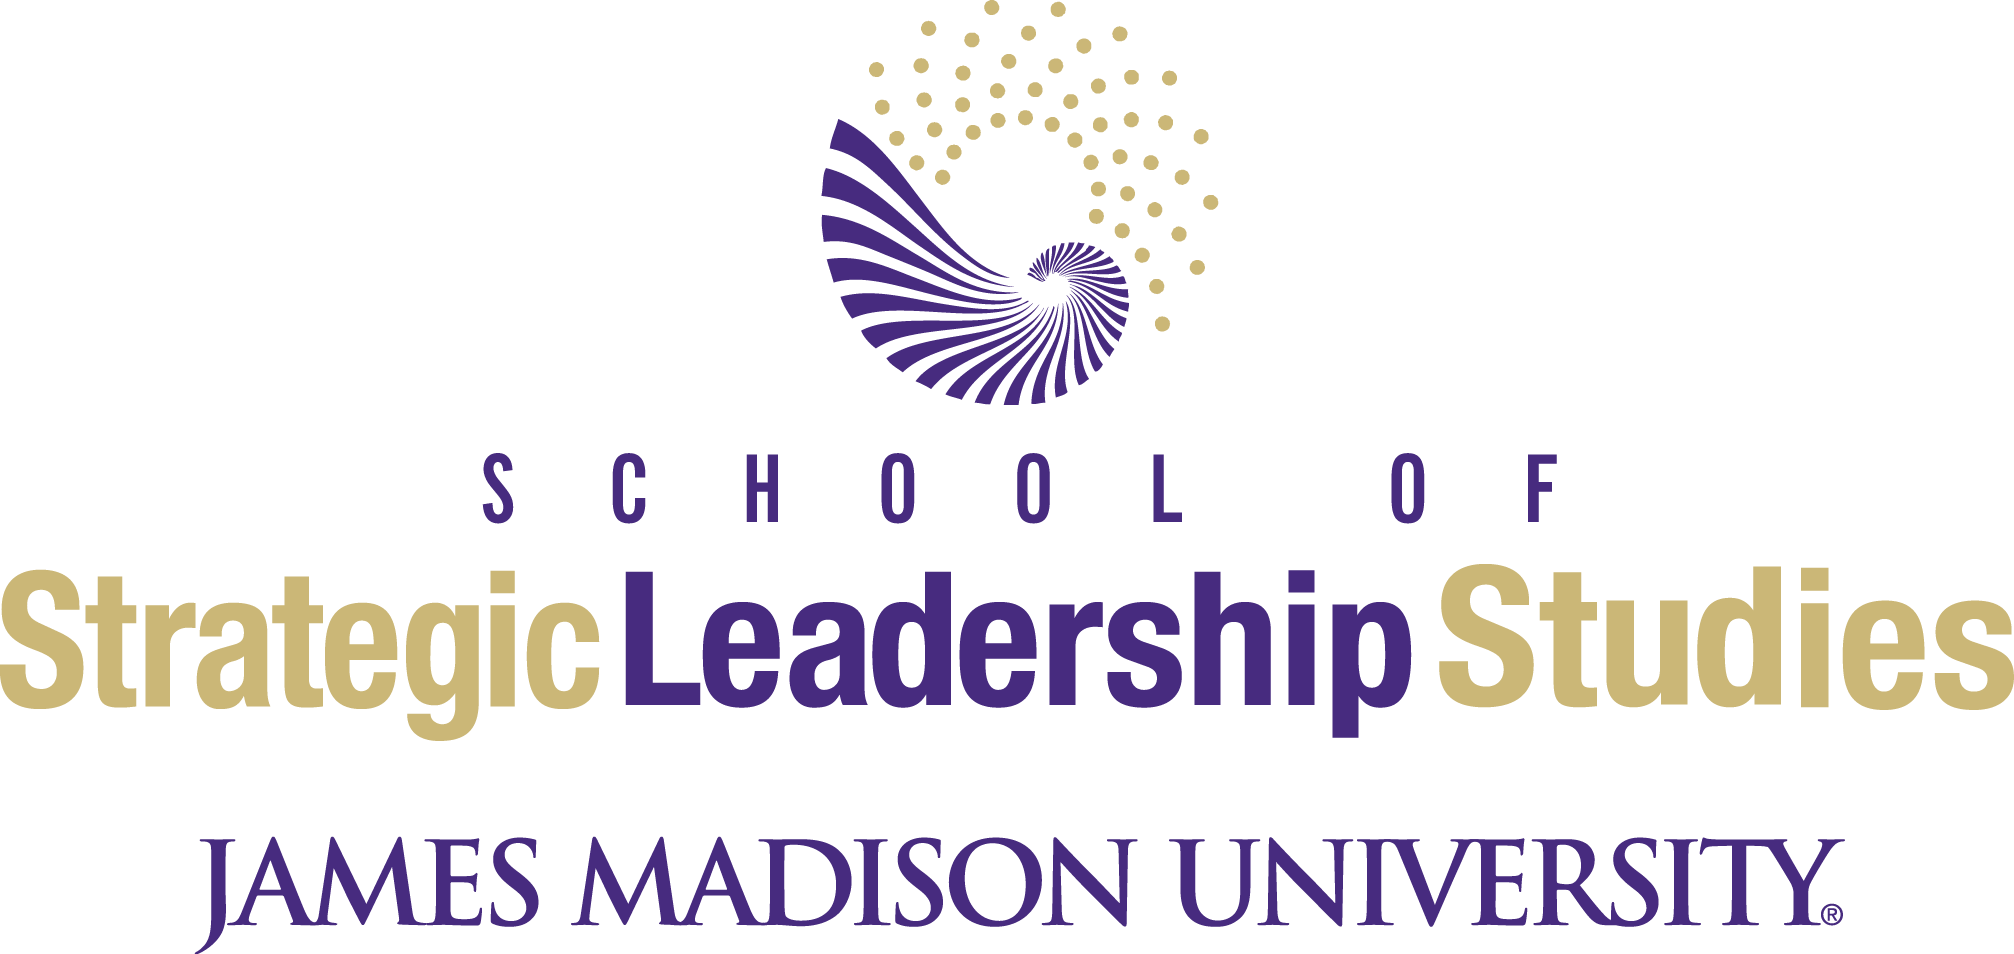 School of Strategic Leadership Studies